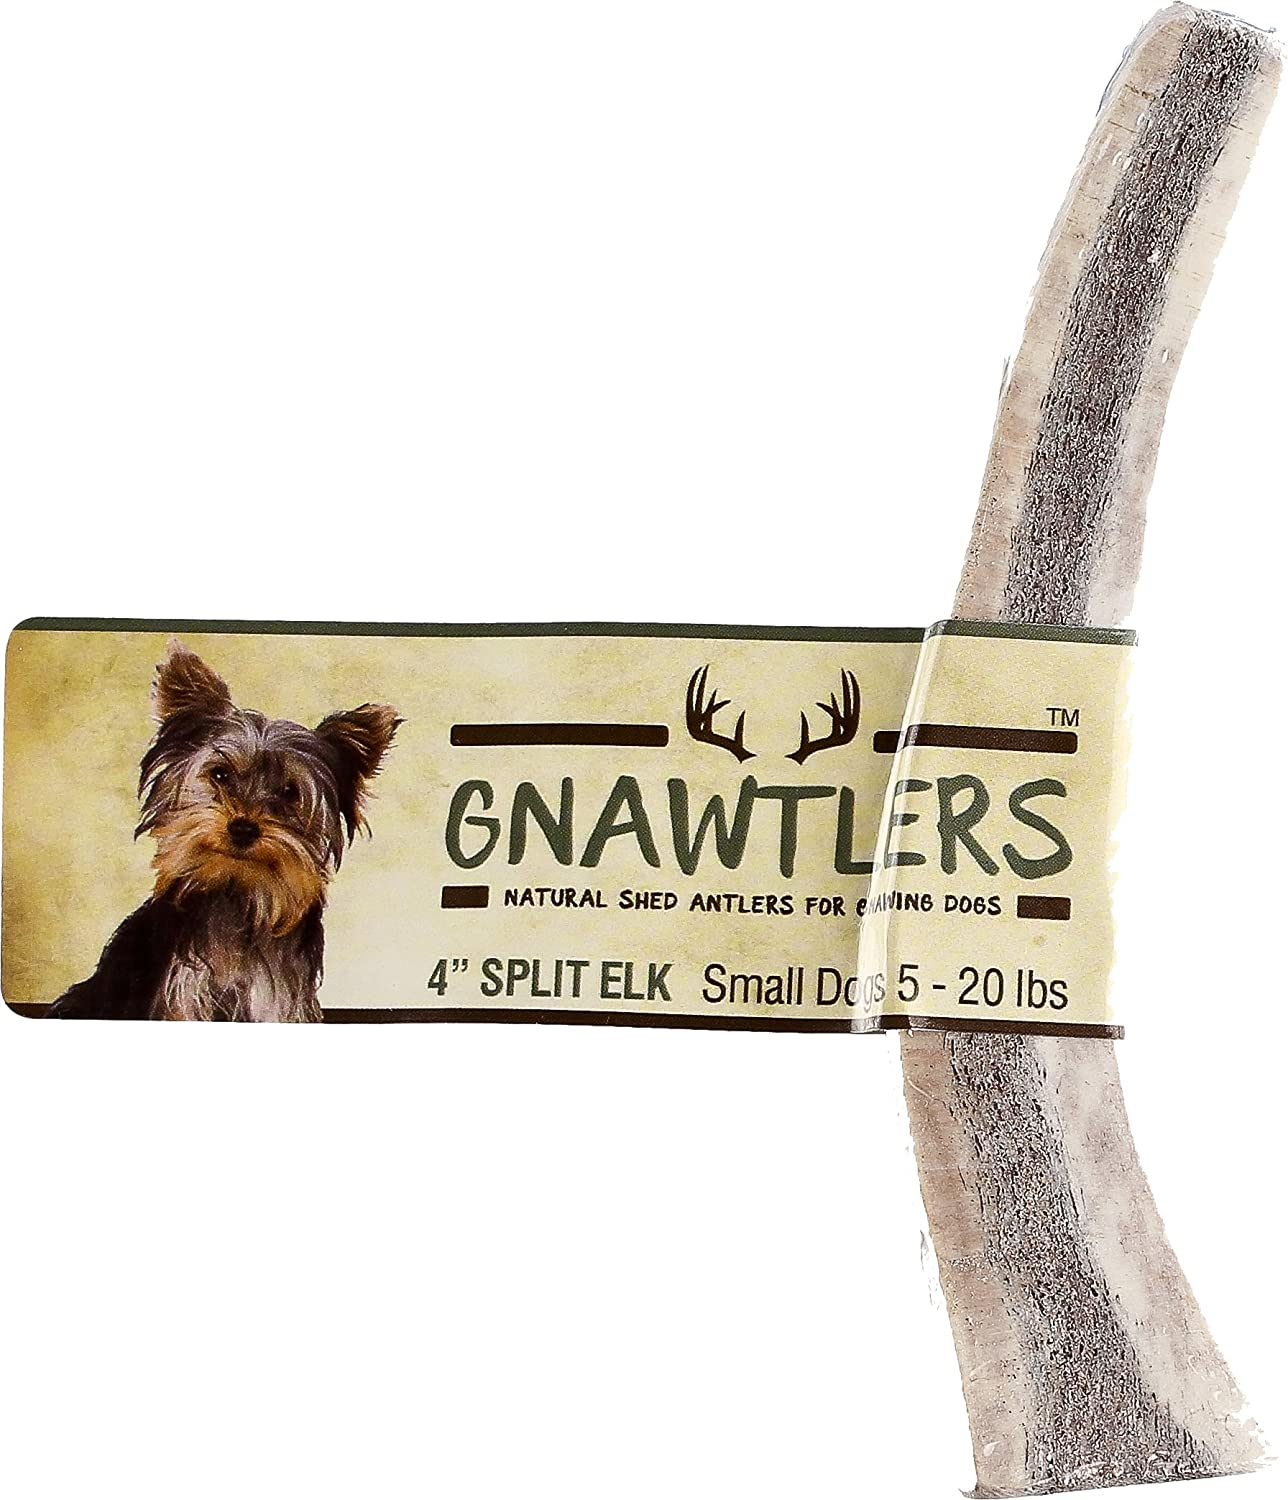 Gnawtlers  Premium Split Elk Antlers for Dogs, Naturally Shed Elk Antler Split, All Natural Split Elk Antler Chews, Specially Selected from Rocky Mountain & Heartland Regions  4  Elk Antler Small